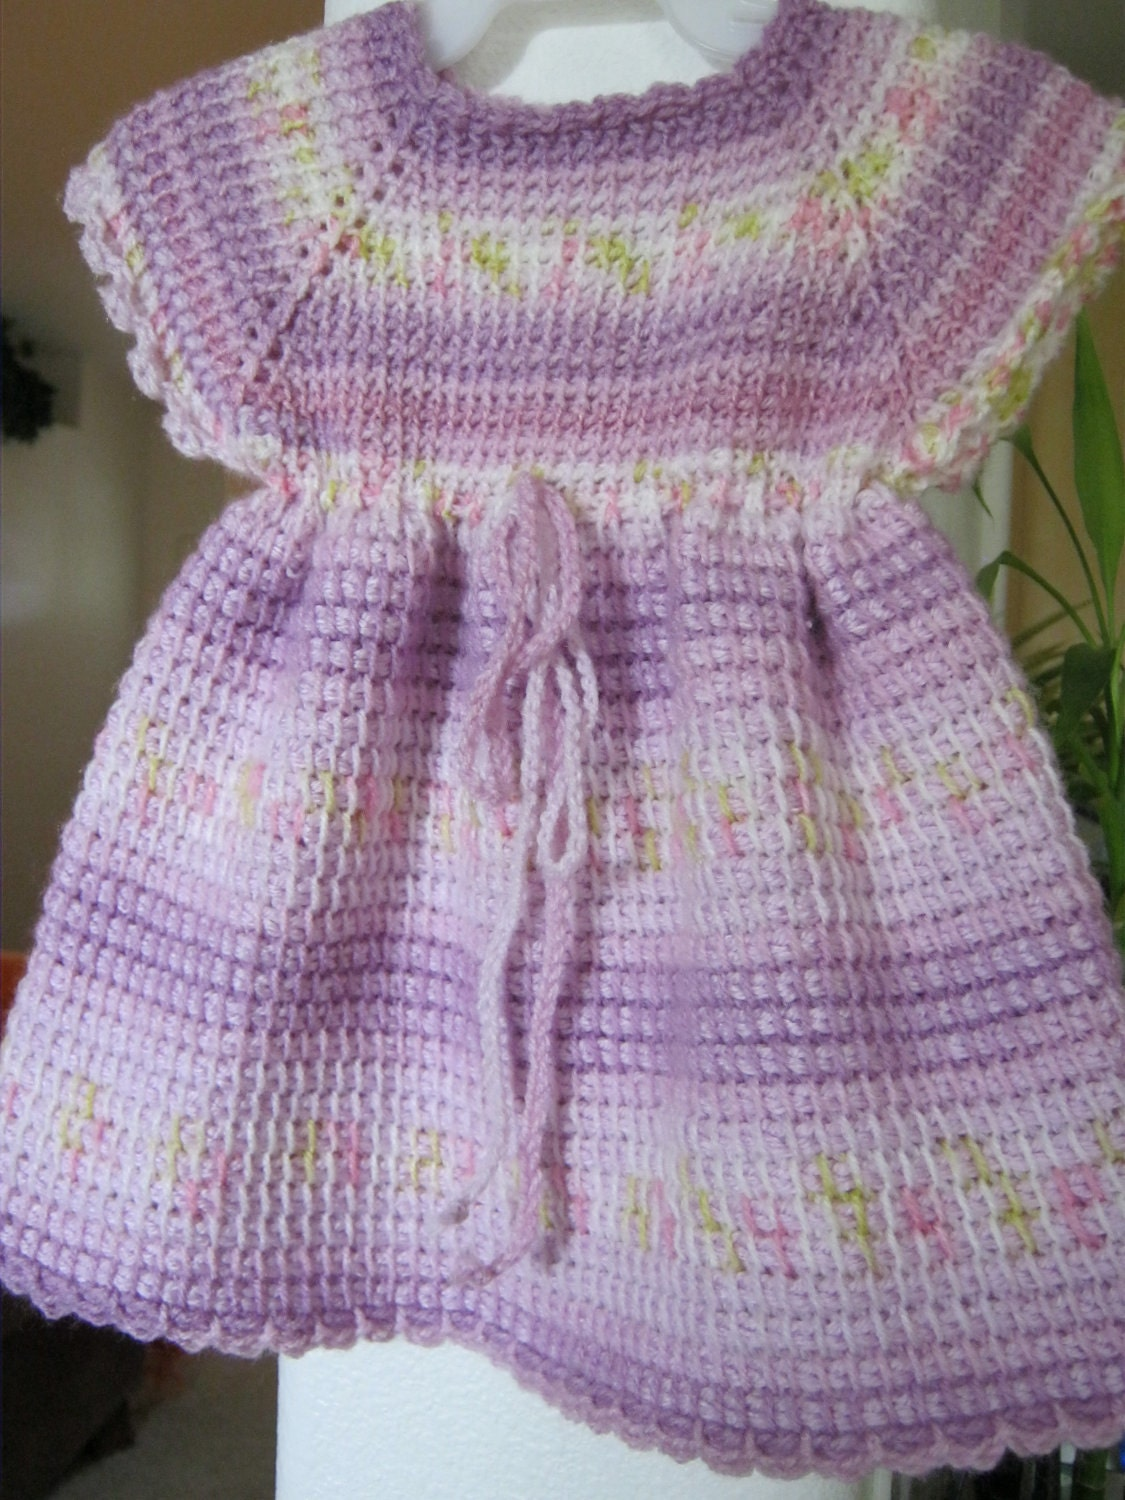 Lilac Purple Crochet Baby Dress Tunisian Crocheted 0 6 Month